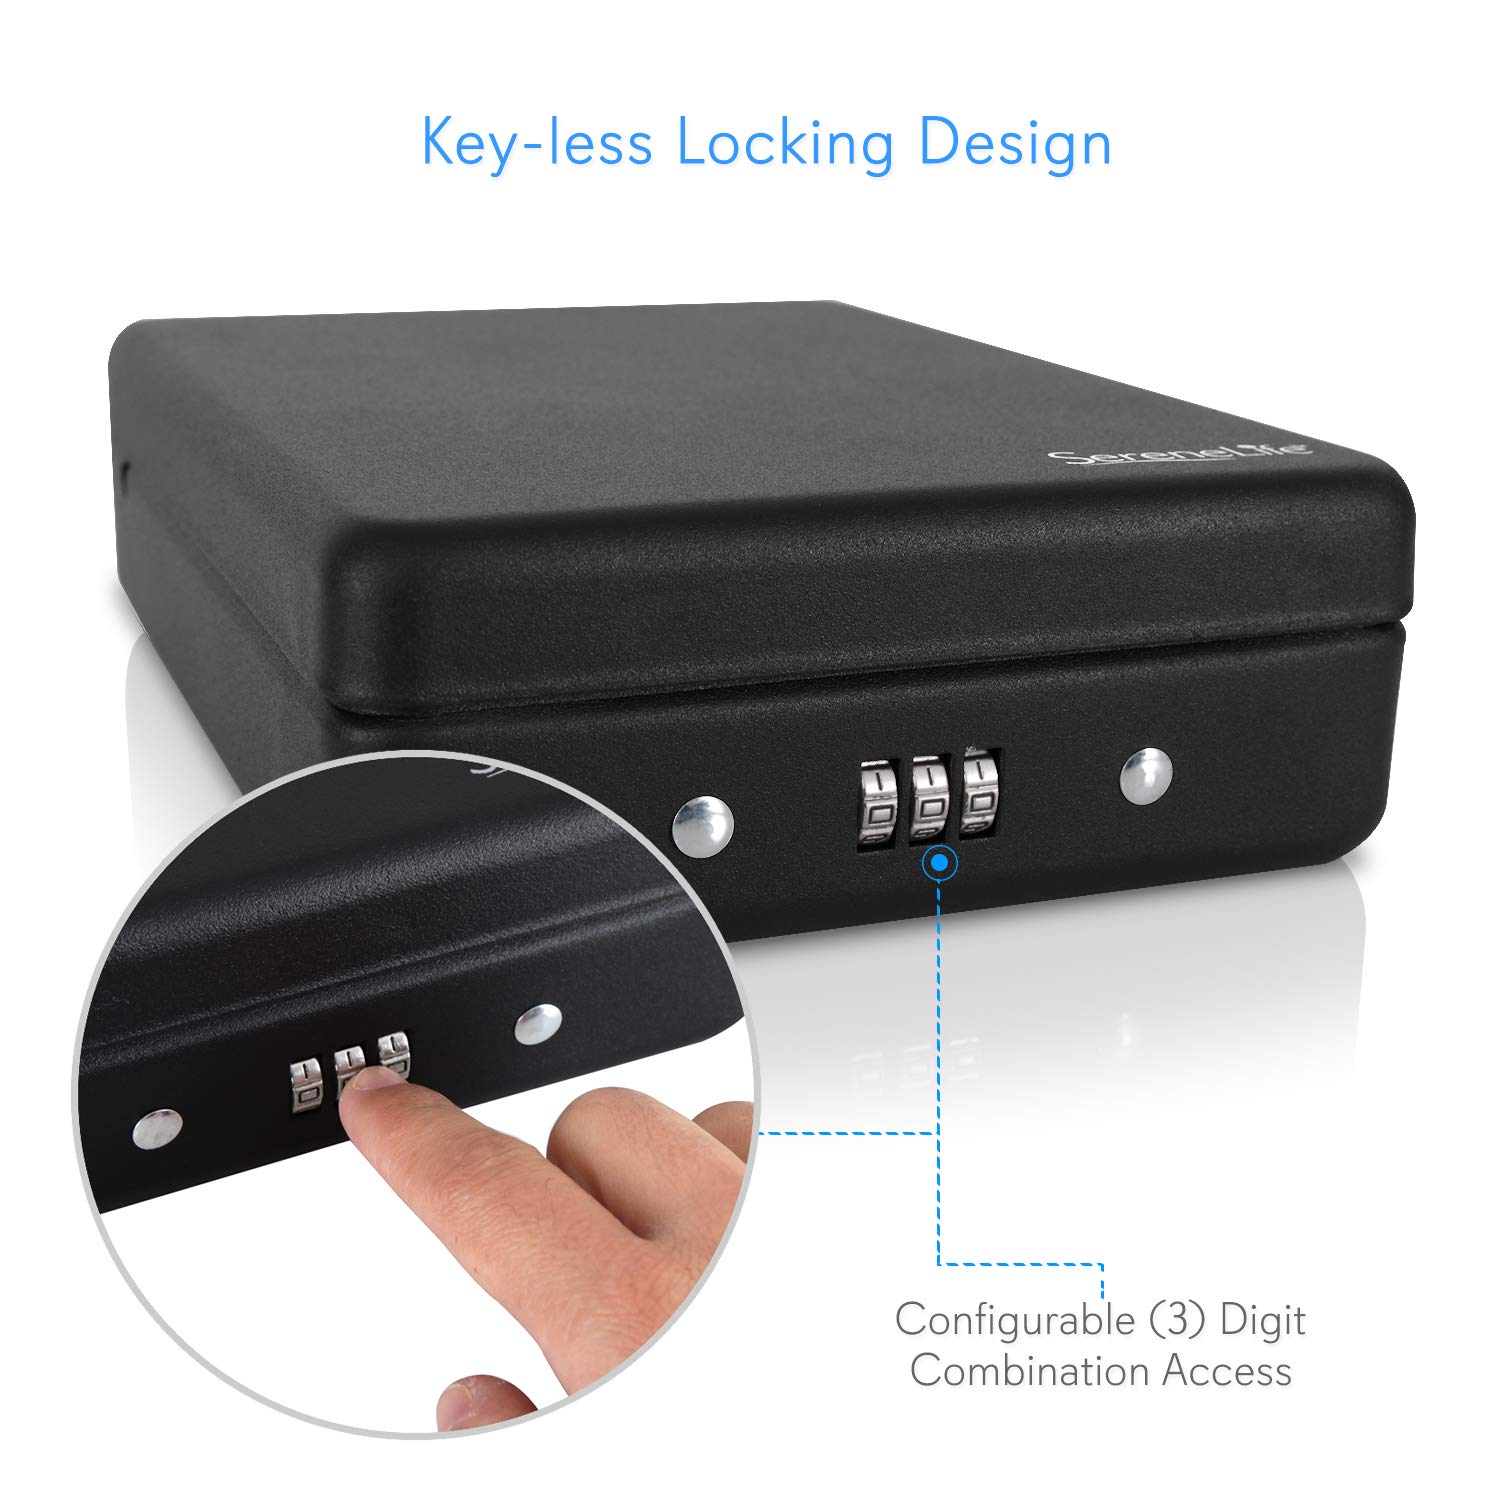 Portable Pistol Handgun Safe Box - Keyless Mechanical Lock Gun Security Storage Case with 3 Digit Secure Combination Locking, Mount Cable - for Firearm, Jewelry - Home, Car - SereneLife SLSFCR21 by SereneLife (Image #3)